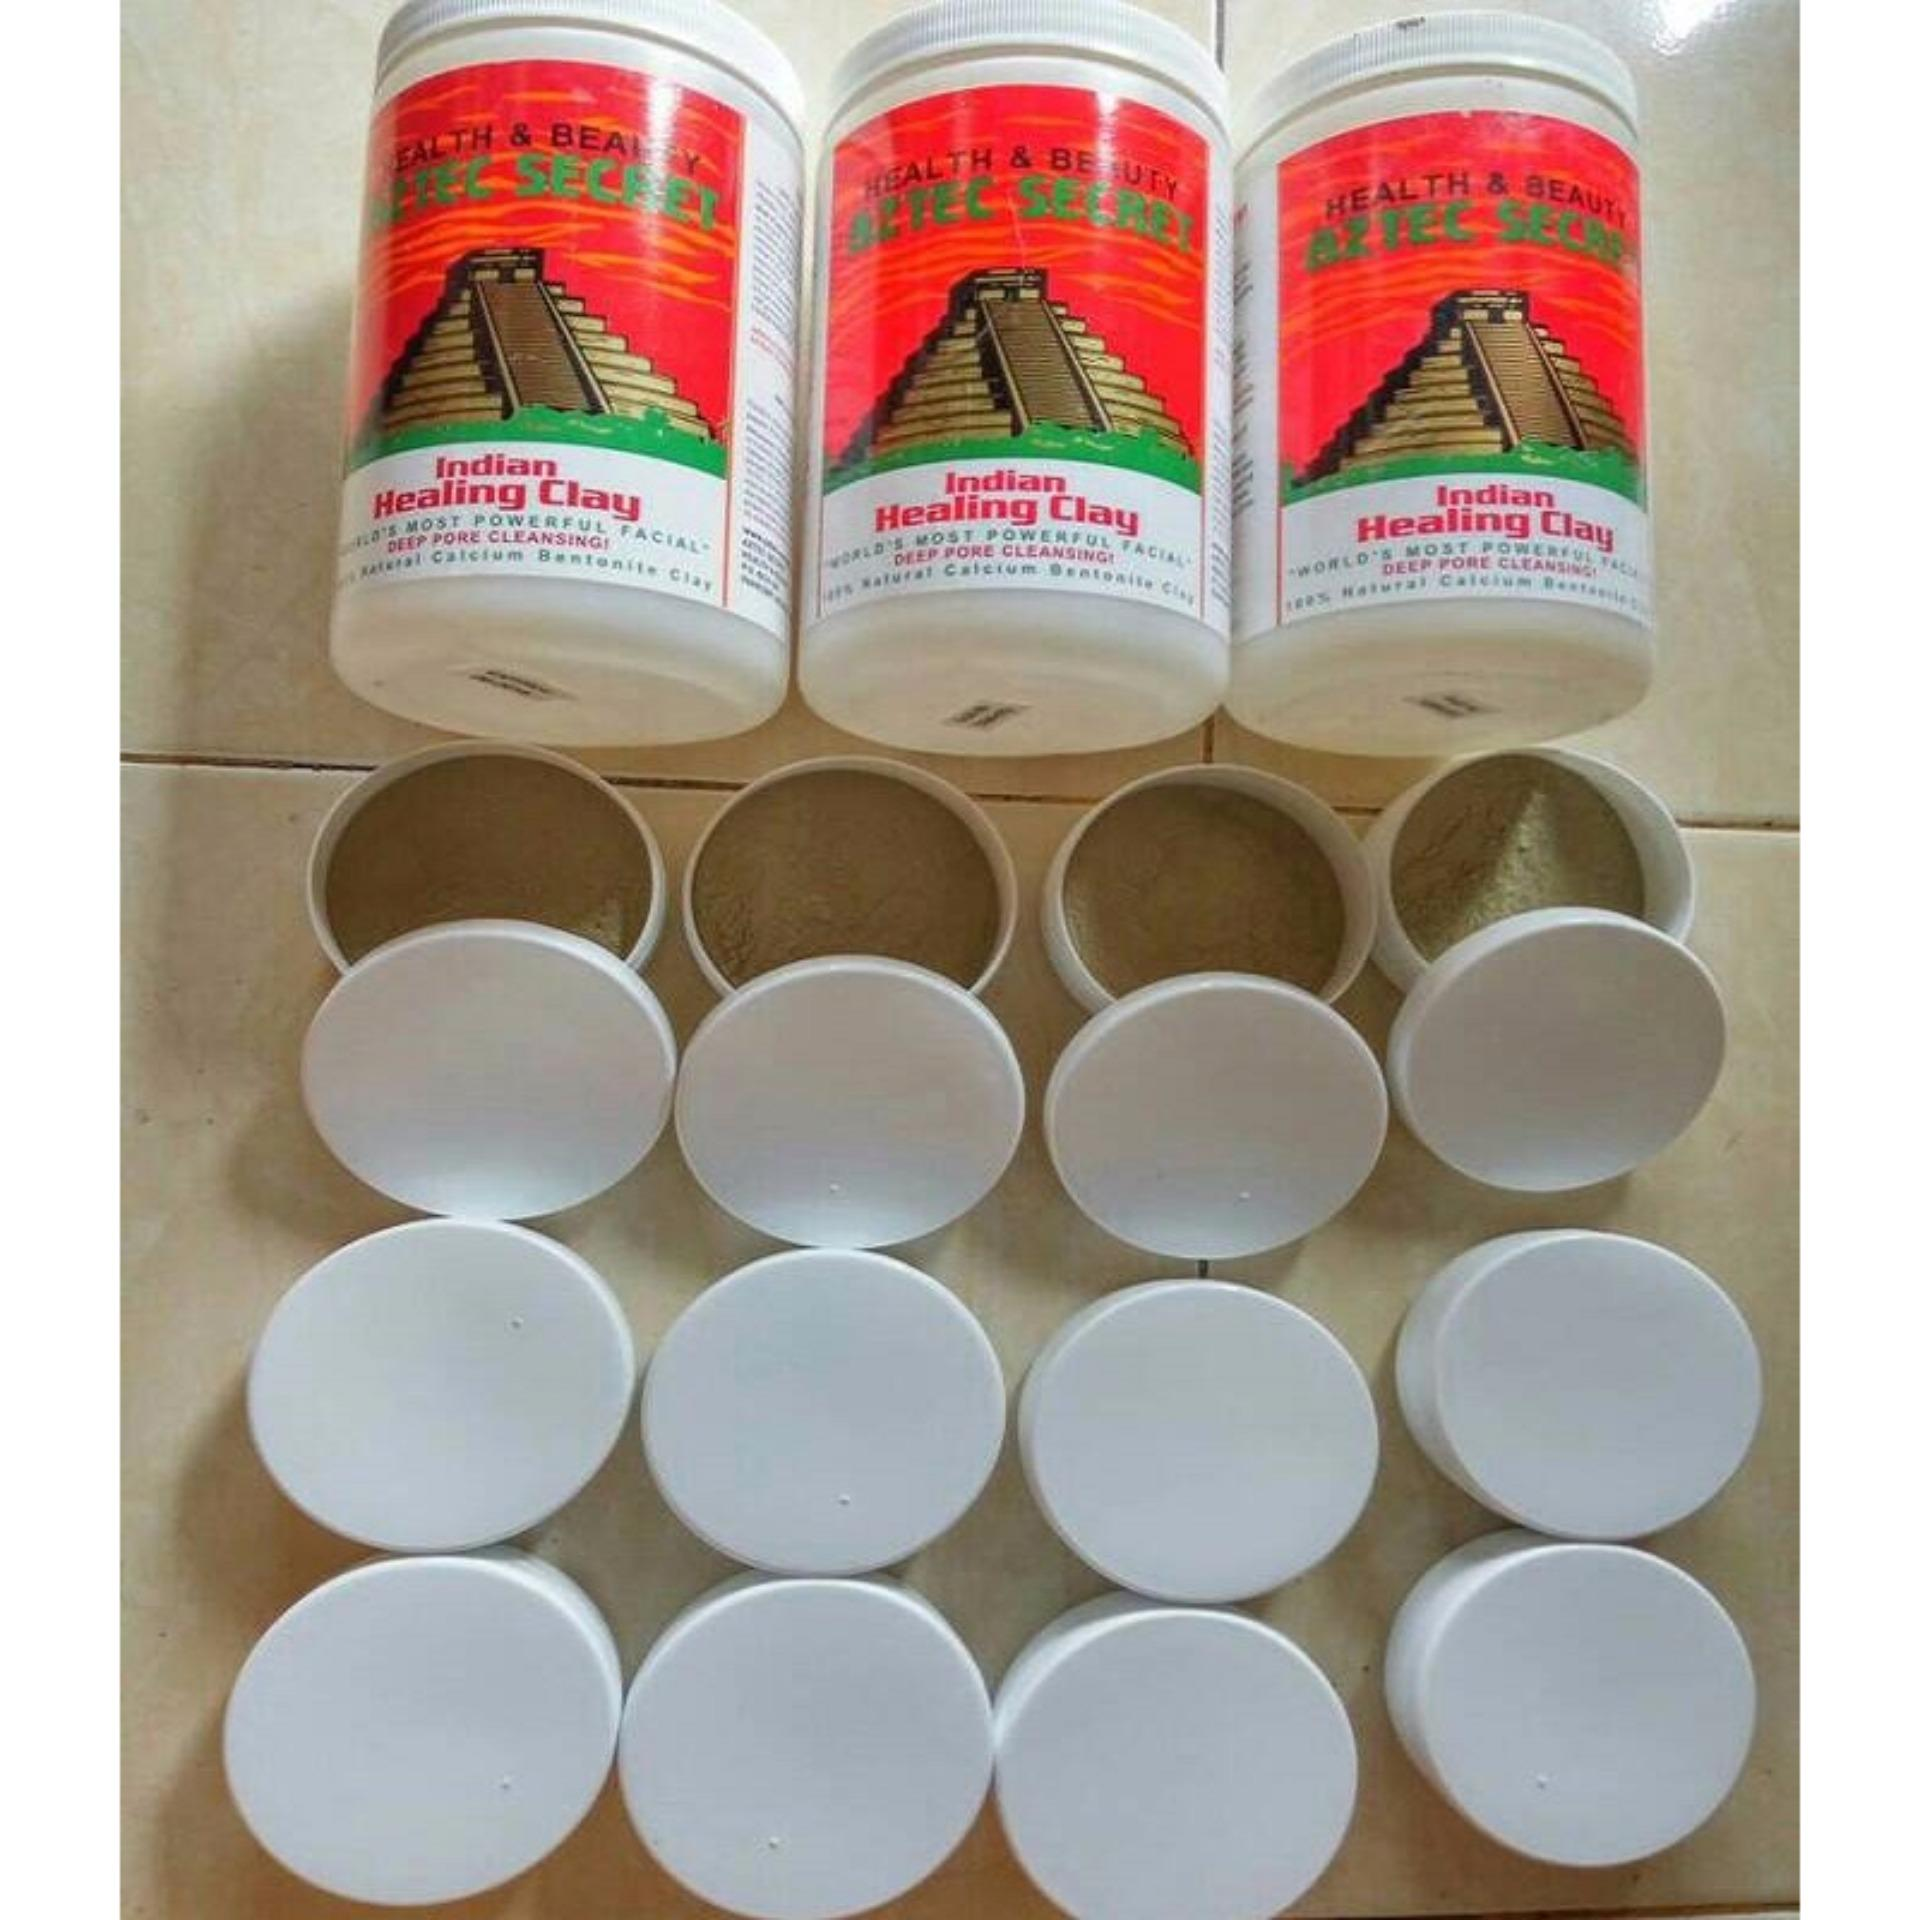 Harga Aztec Secret Usa Indian Healing Clay 100 Gram Share In Jar Tester Plastik Masker Wajah Menyamarkan Stretch Mark Online North Sumatra